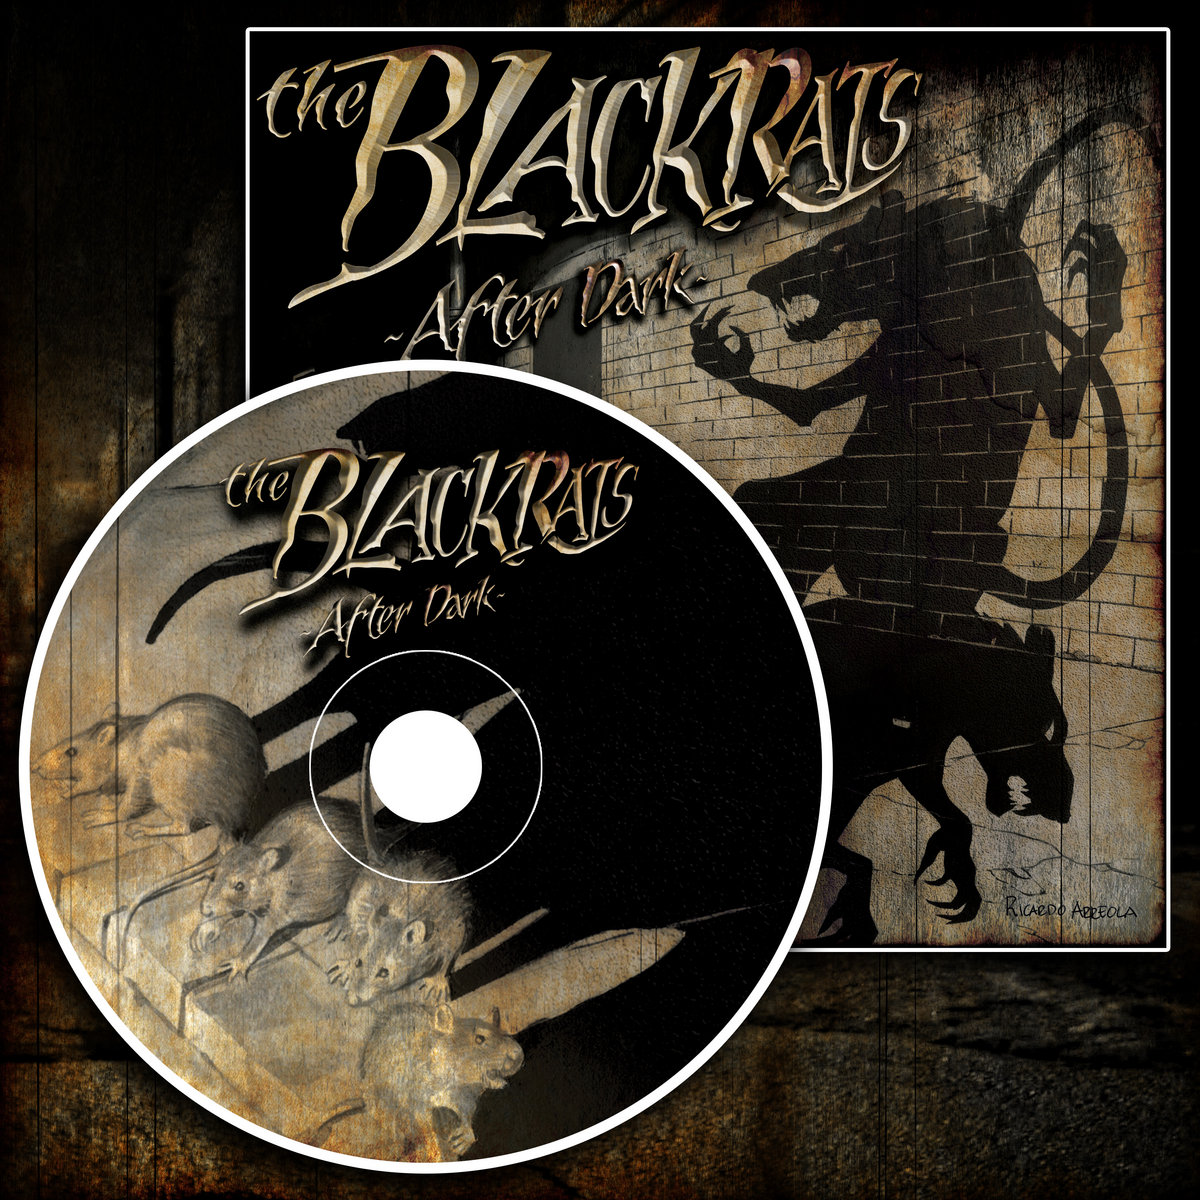 After Dark - EP | the Blackrats